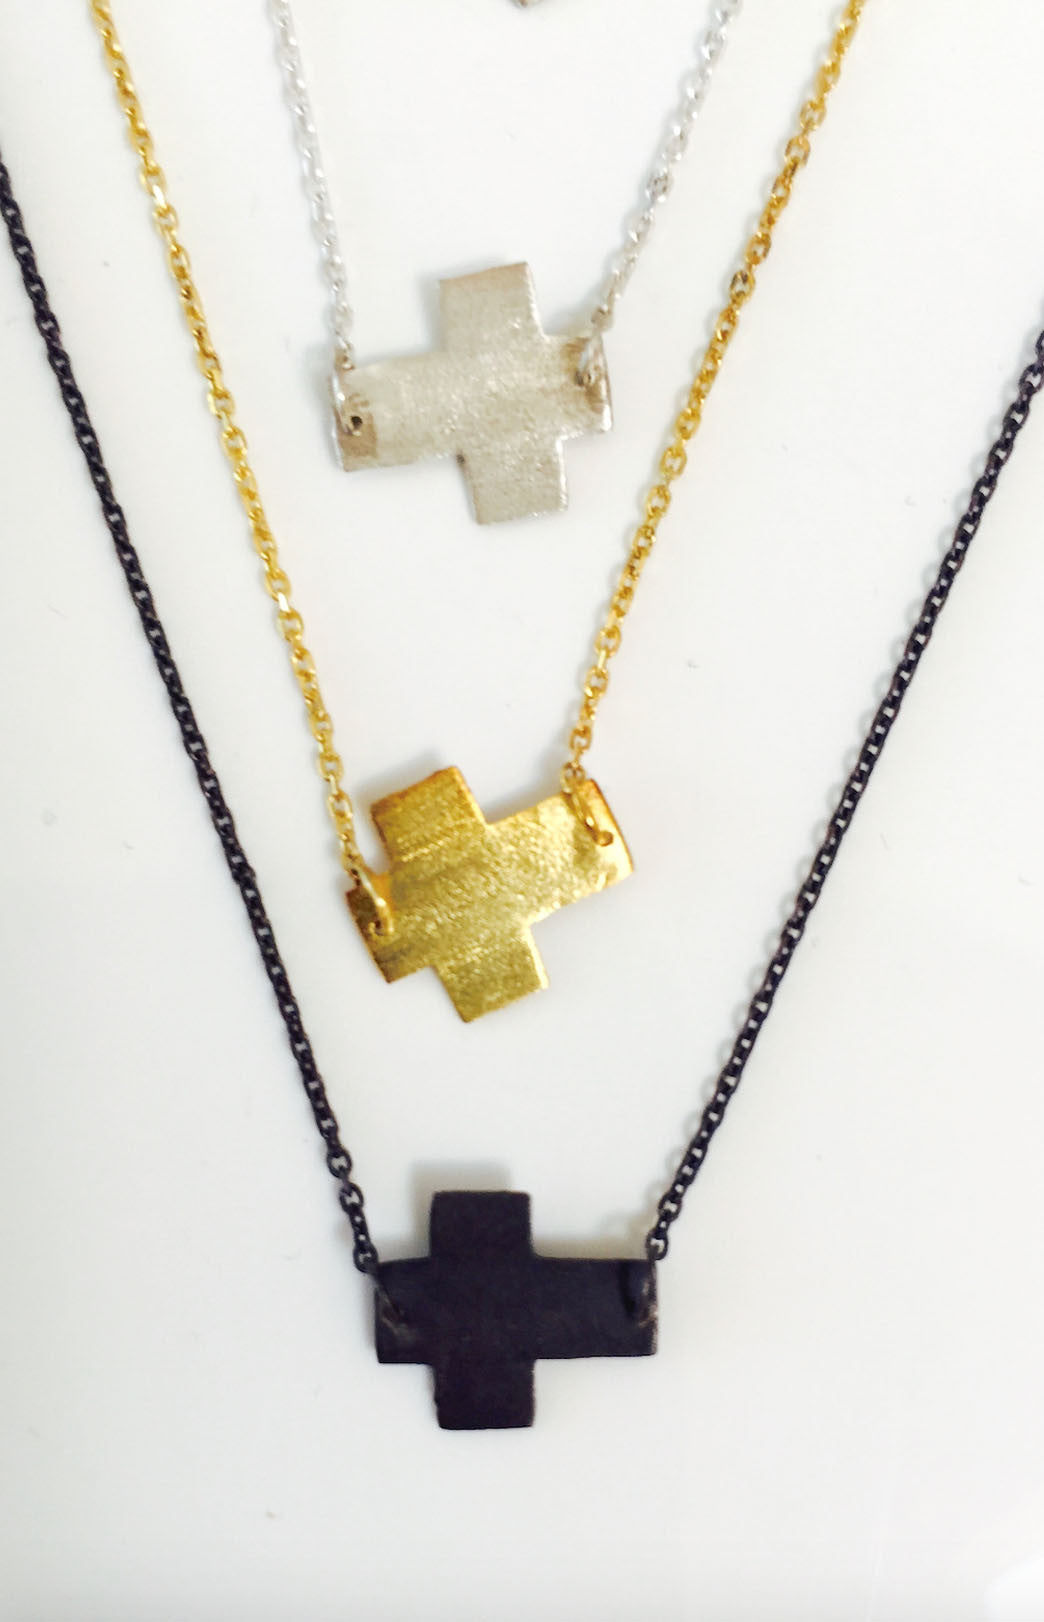 Rossmore Cross Necklace Outfit- 3 each